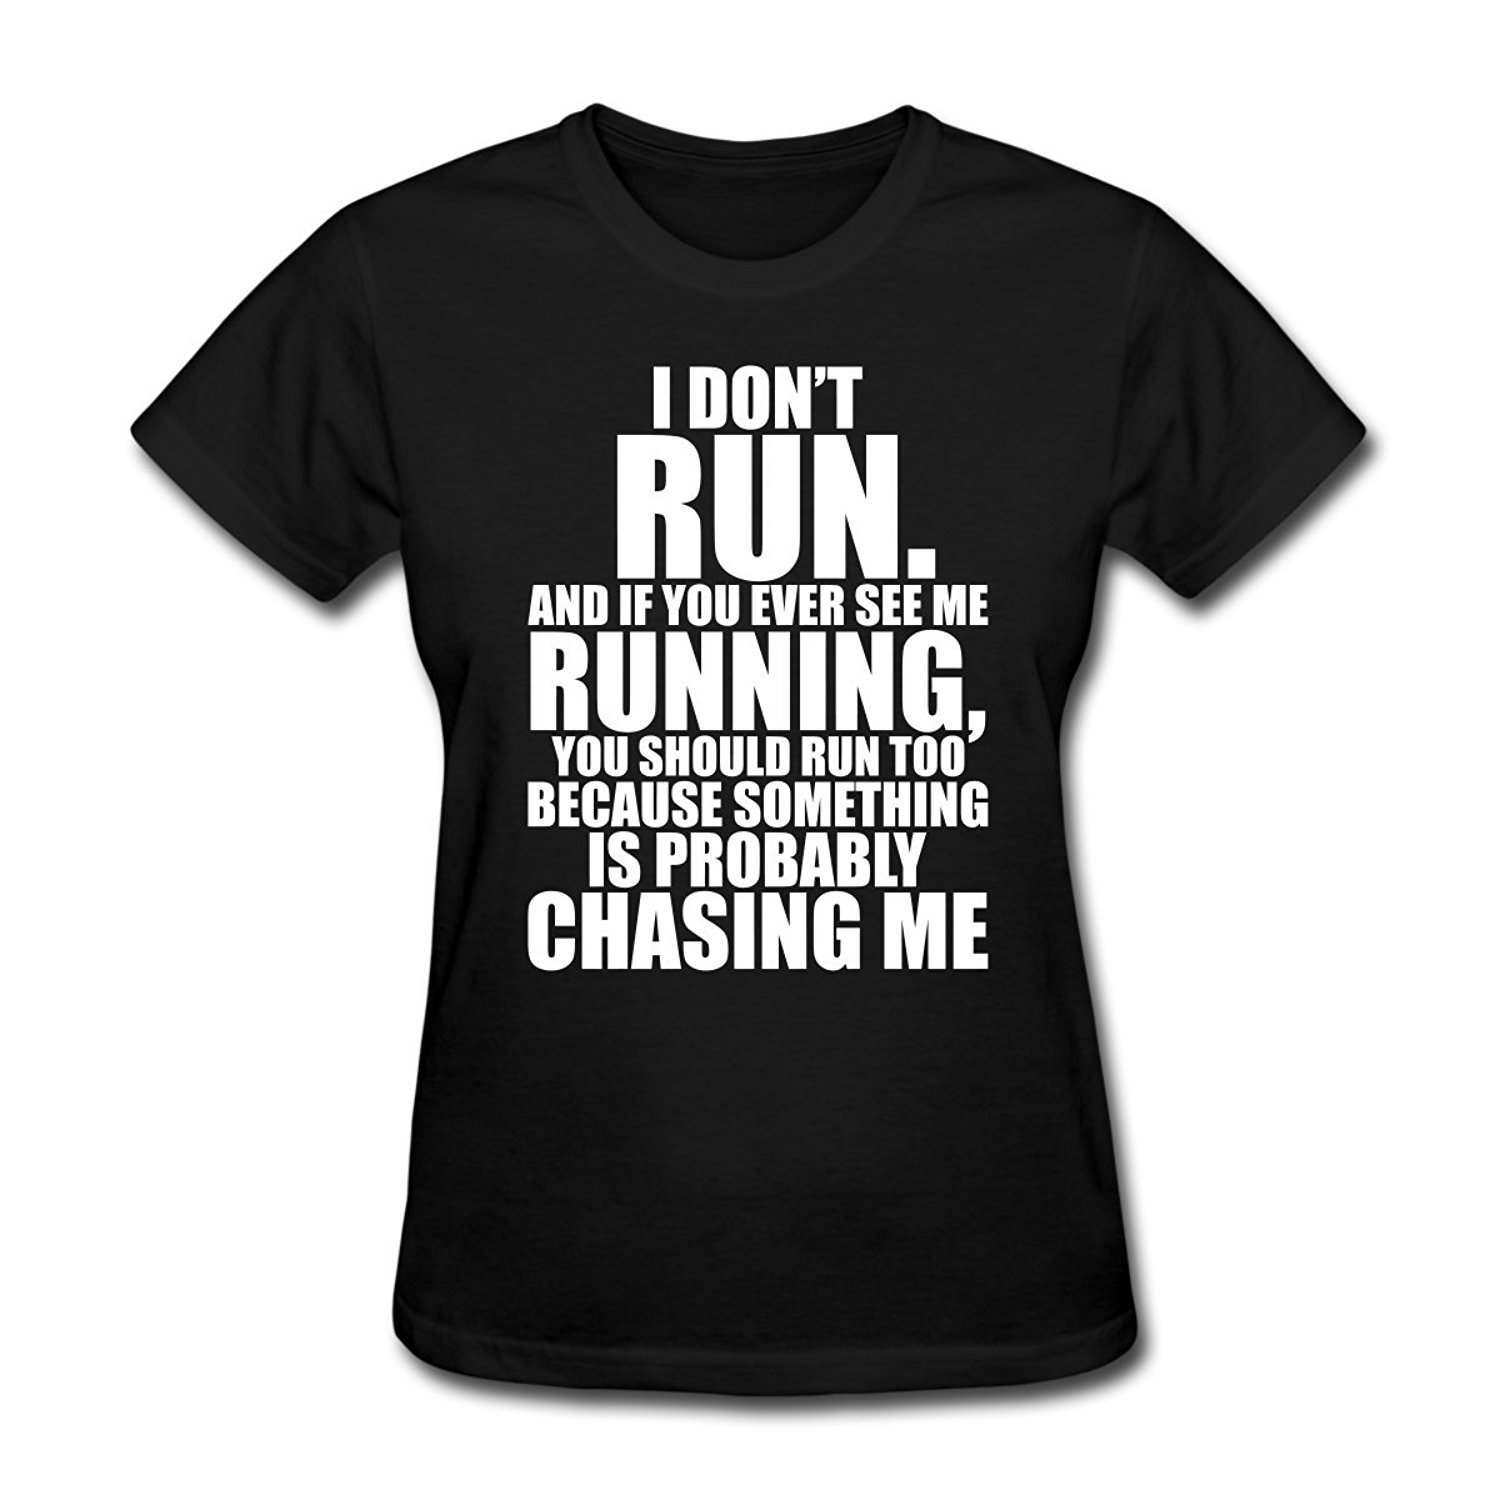 Black t shirts with quotes - Runninger Funny Quote Women S T Shirt Printed Tops Hot Sales Tee Shirts Women Shirts Hip Hop Style Streetwear